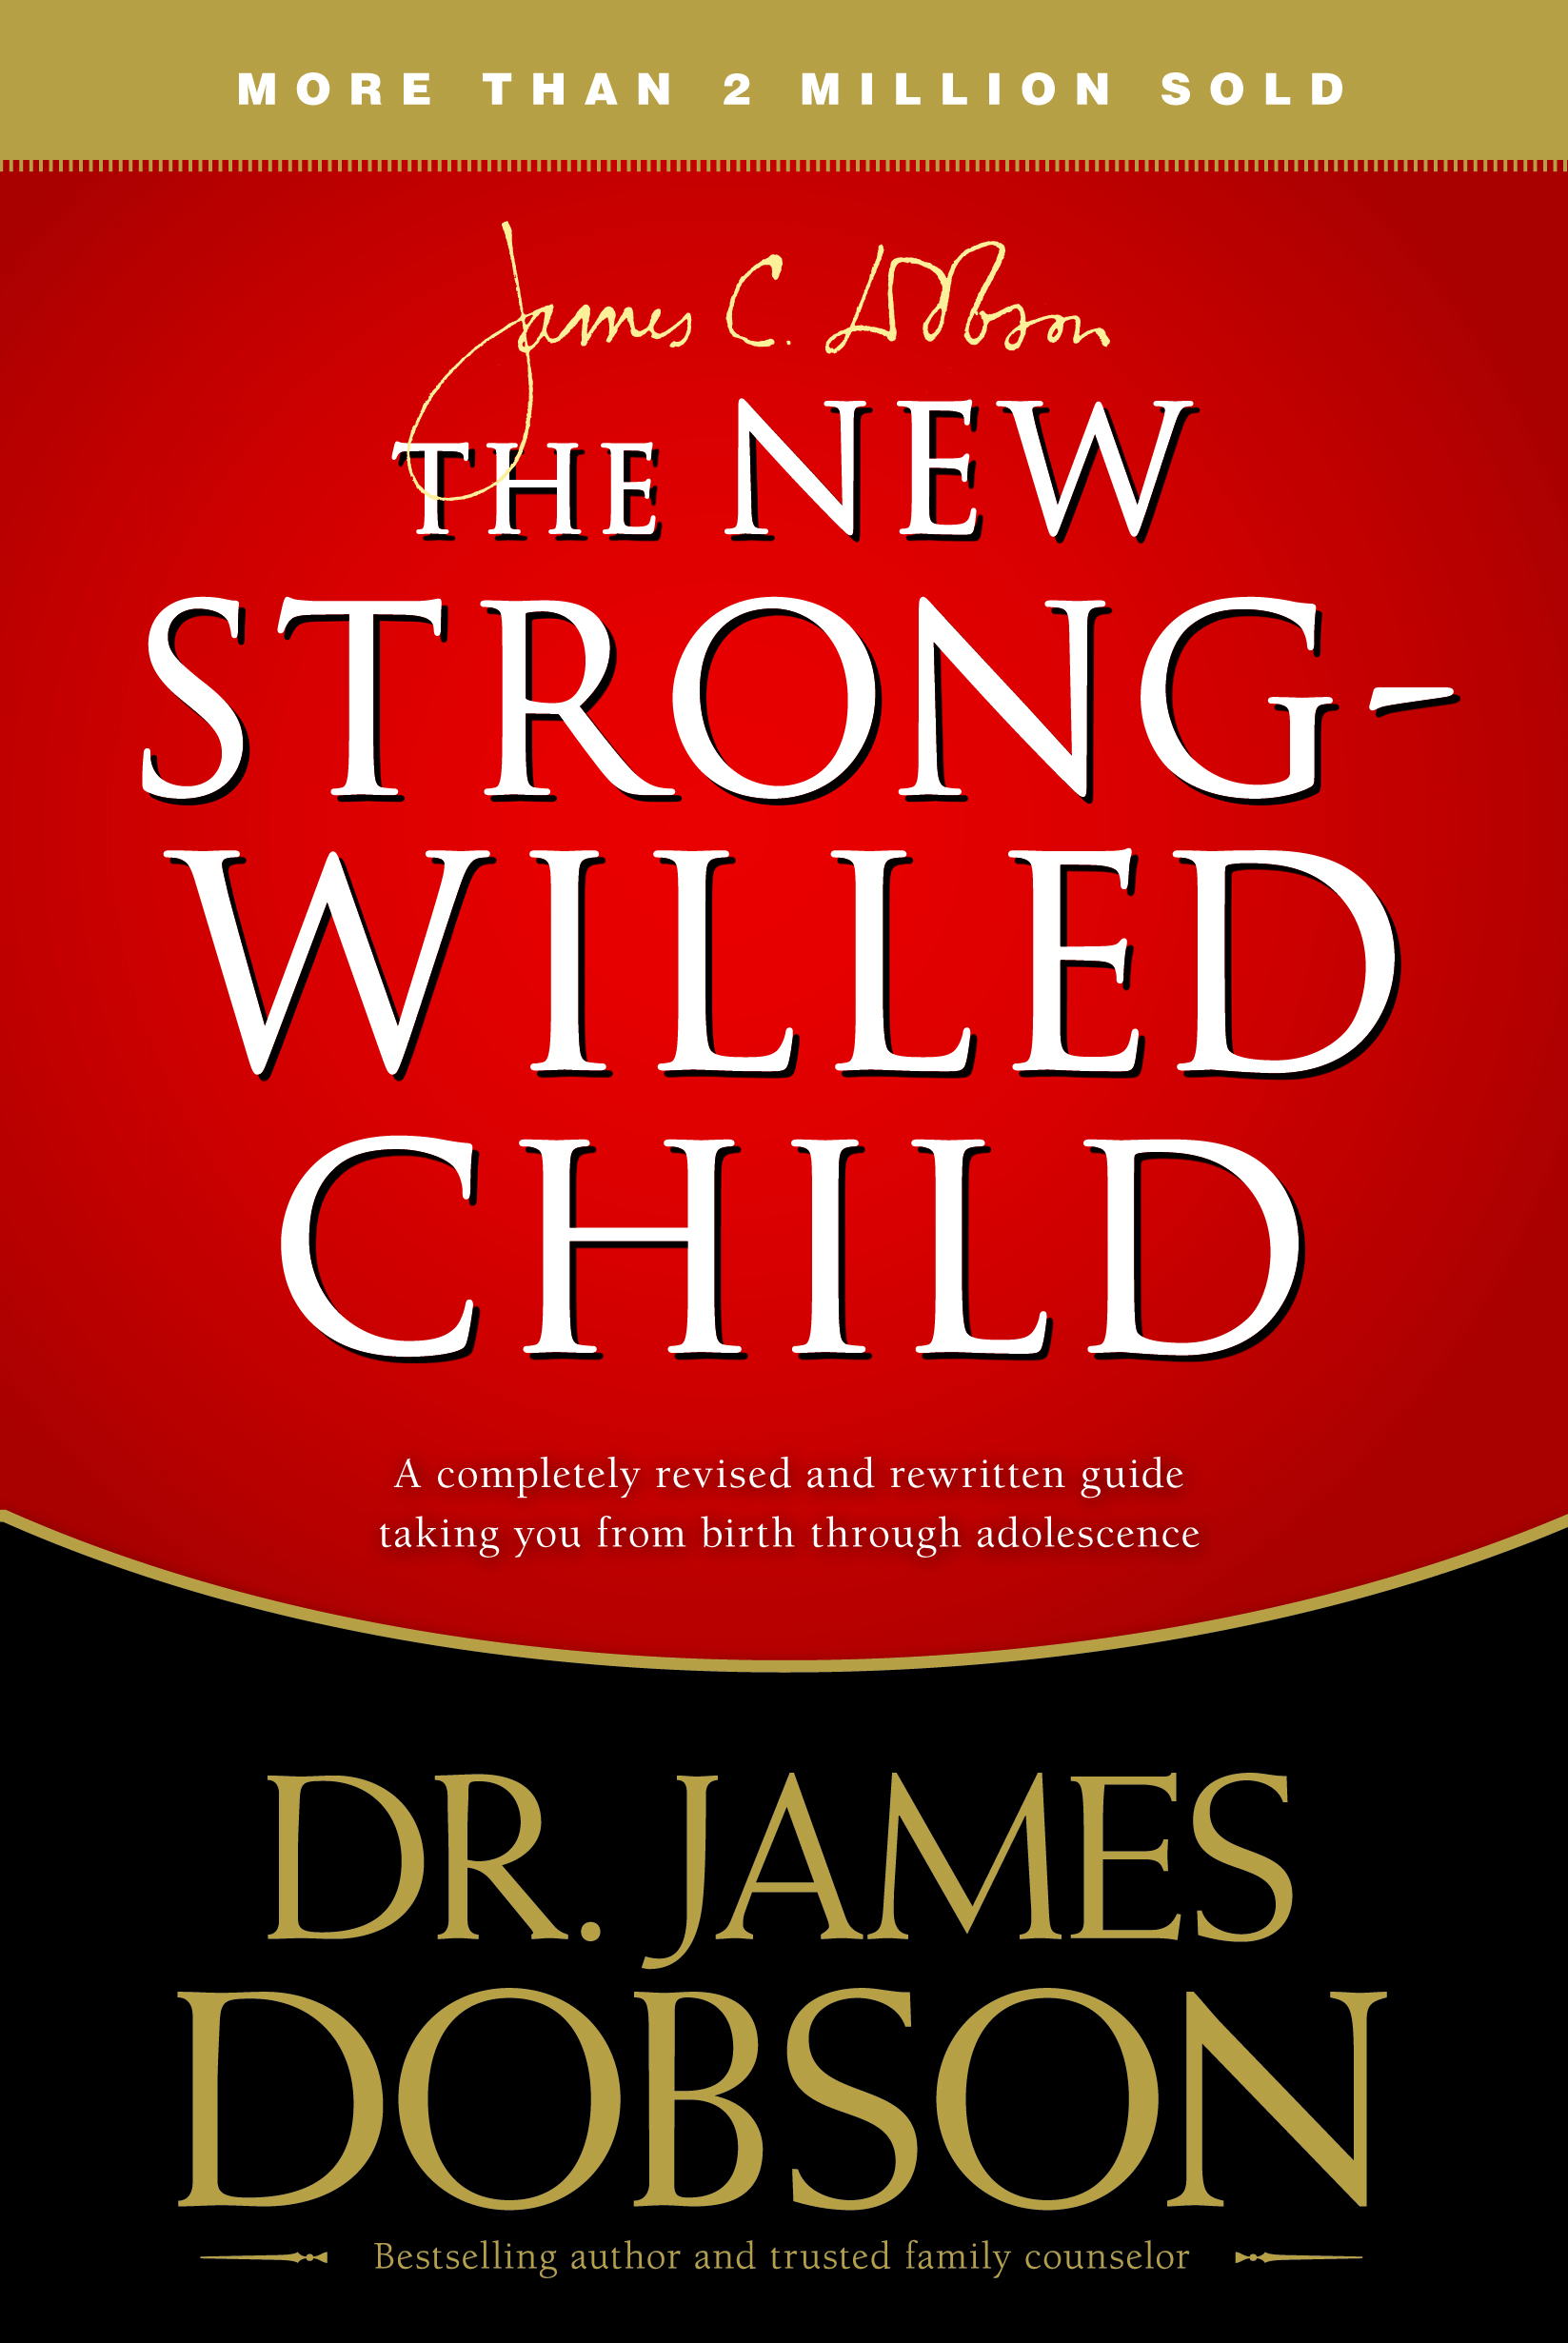 The New Strong-Willed Child by Dr. James Dobson Book Review | Making the Most Blog